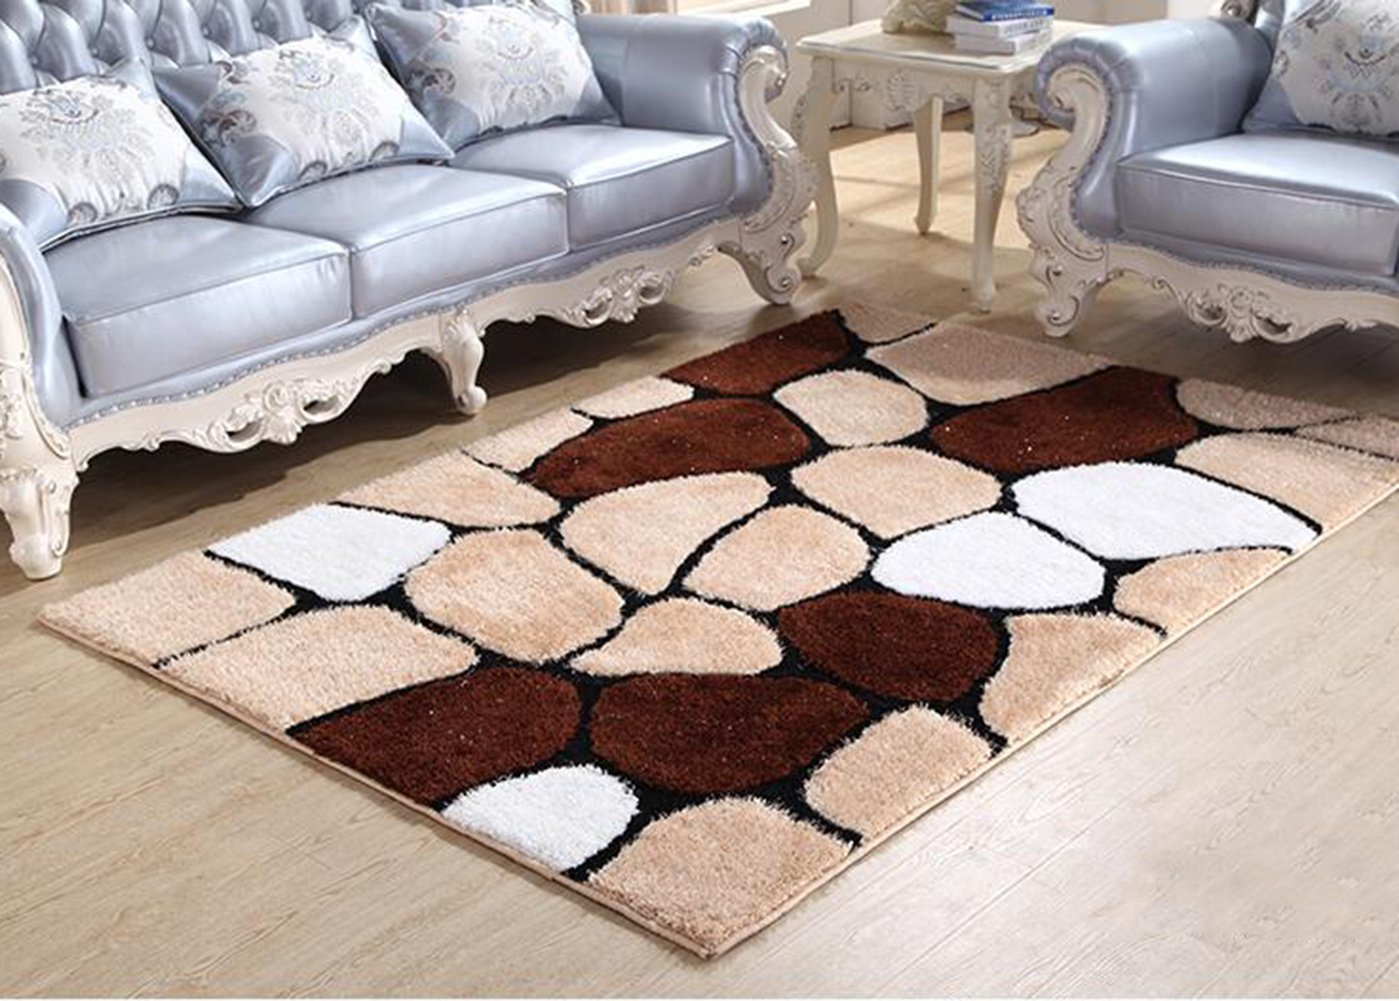 Modern Geometry Home Rugs - MeMoreCool Anti-slipping Bottom Living Room/Bedroom Carpets Thicken Design Various Patterns 63 X 91 Inch